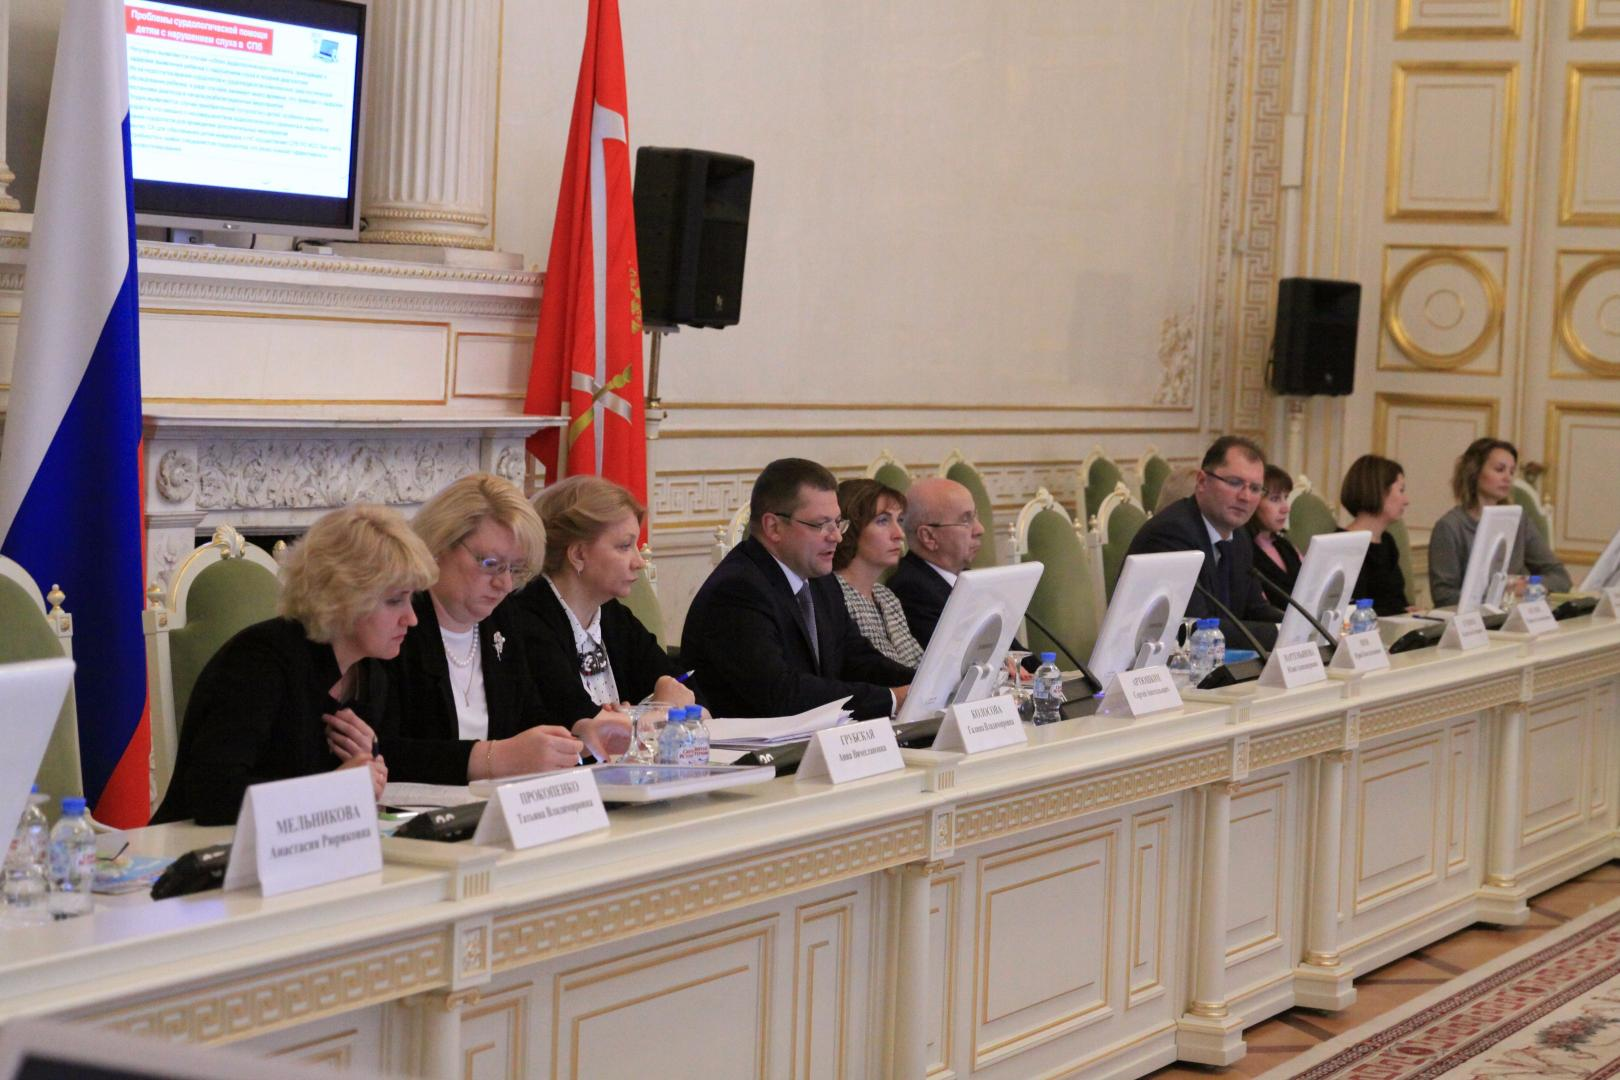 The Mariinsky Palace discussed the issues of assistance to children with hearing impairment